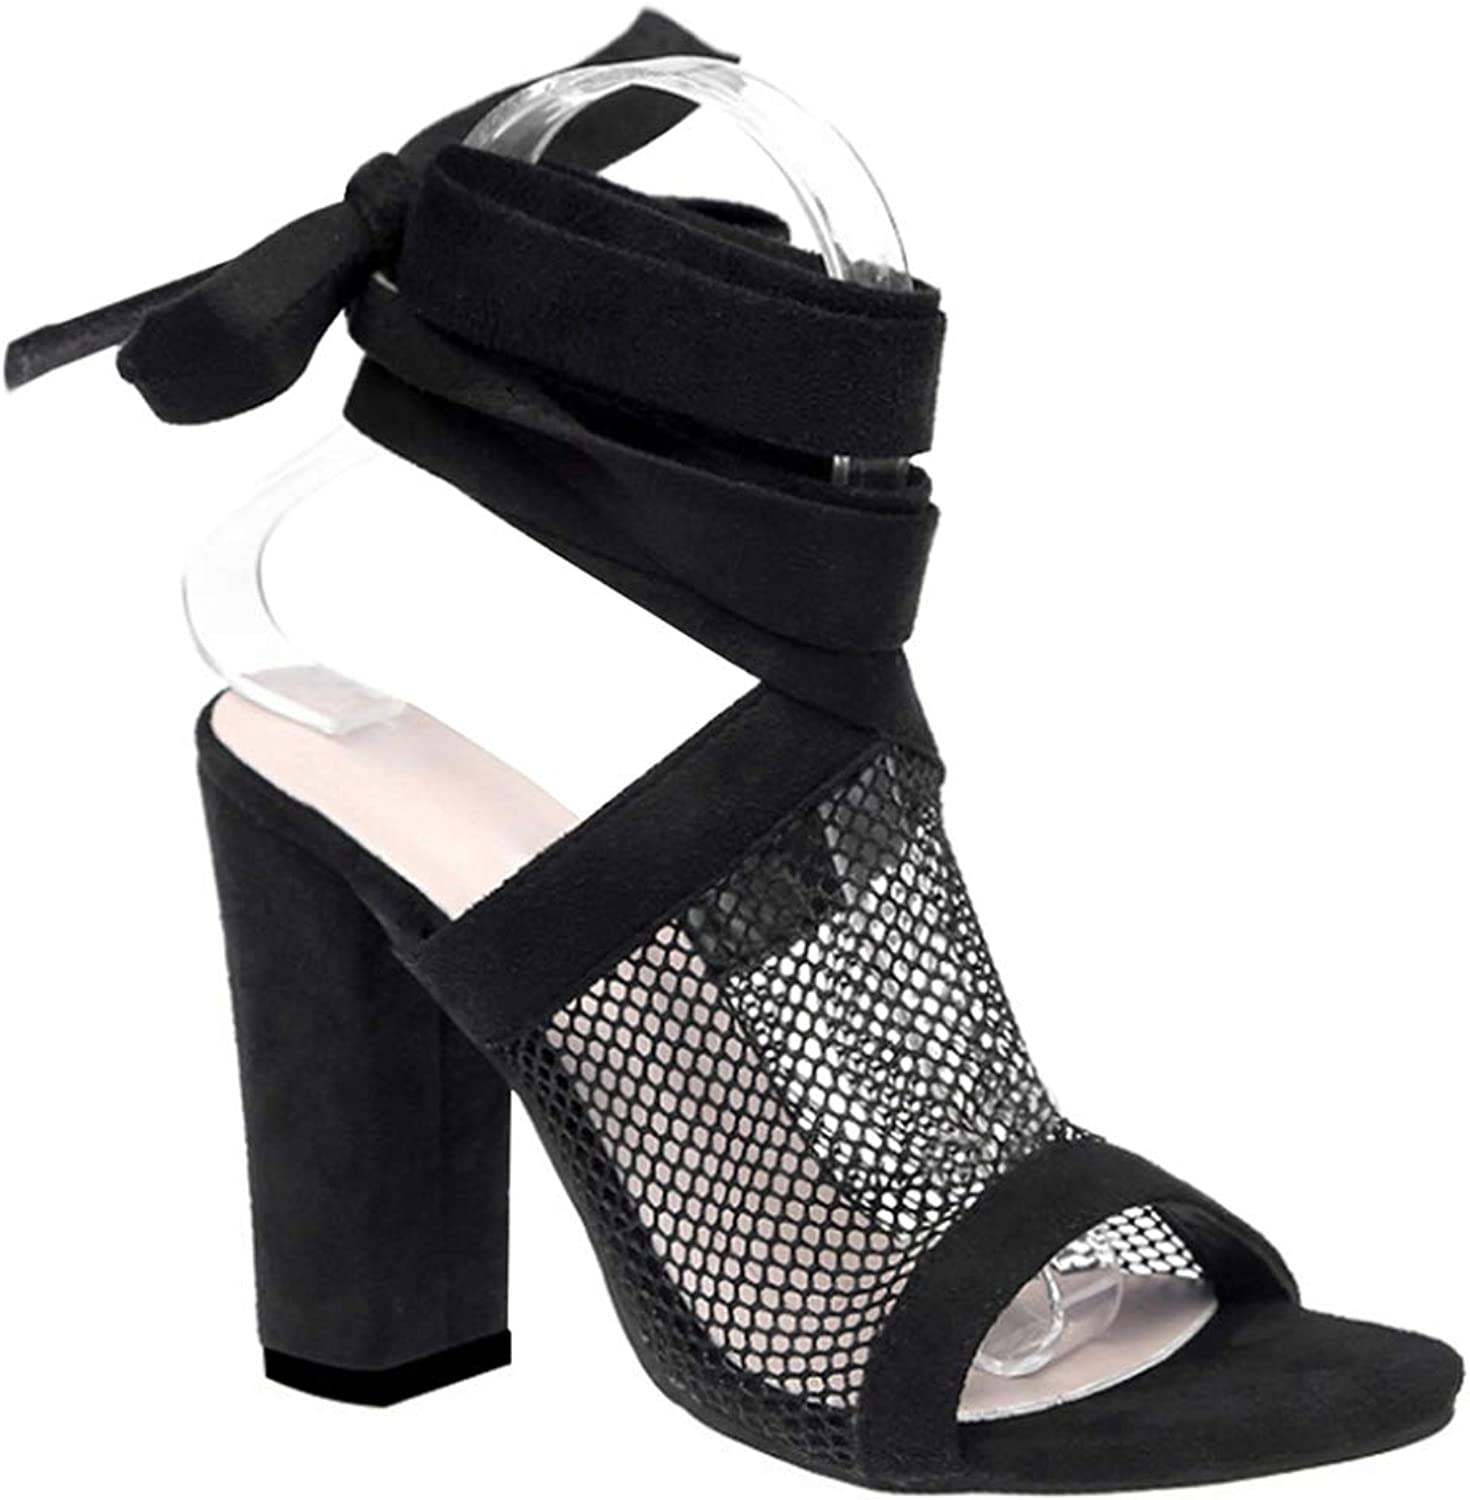 Uirend Womens shoes Block Heel Sandals - Women Strappy High Heels Summer Ankle Lace Up shoes Party Club Sexy Mesh Peep Toe